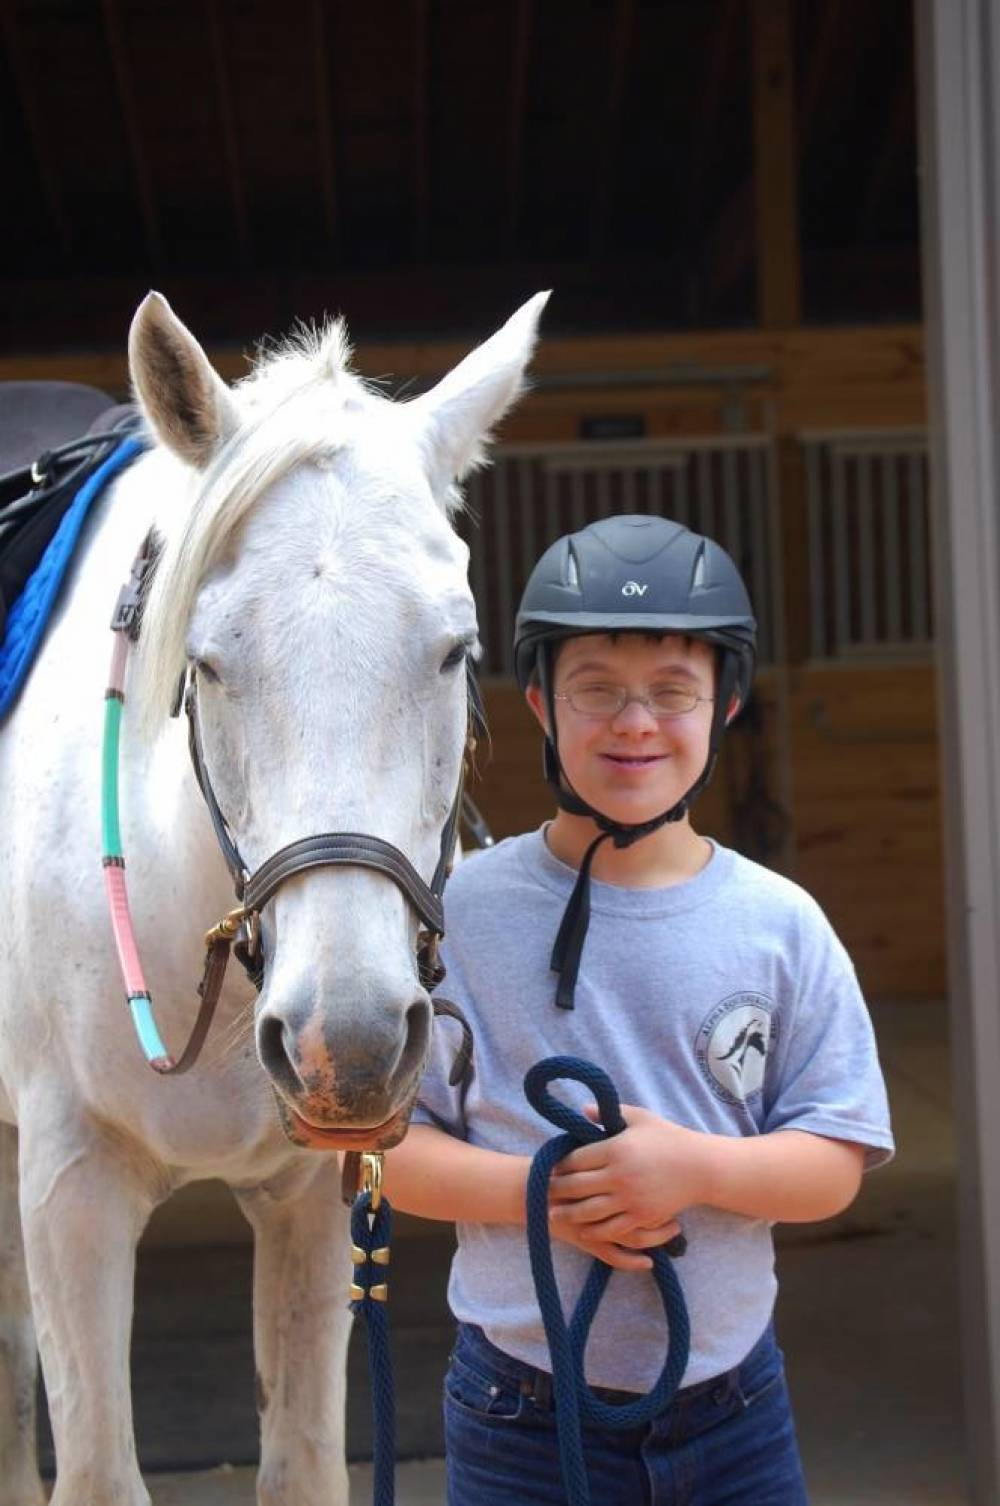 TOP GEORGIA SUMMER CAMP: Heaven s Gait Therapeutic Riding is a Top Summer Camp located in Woodstock Georgia offering many fun and enriching camp programs.